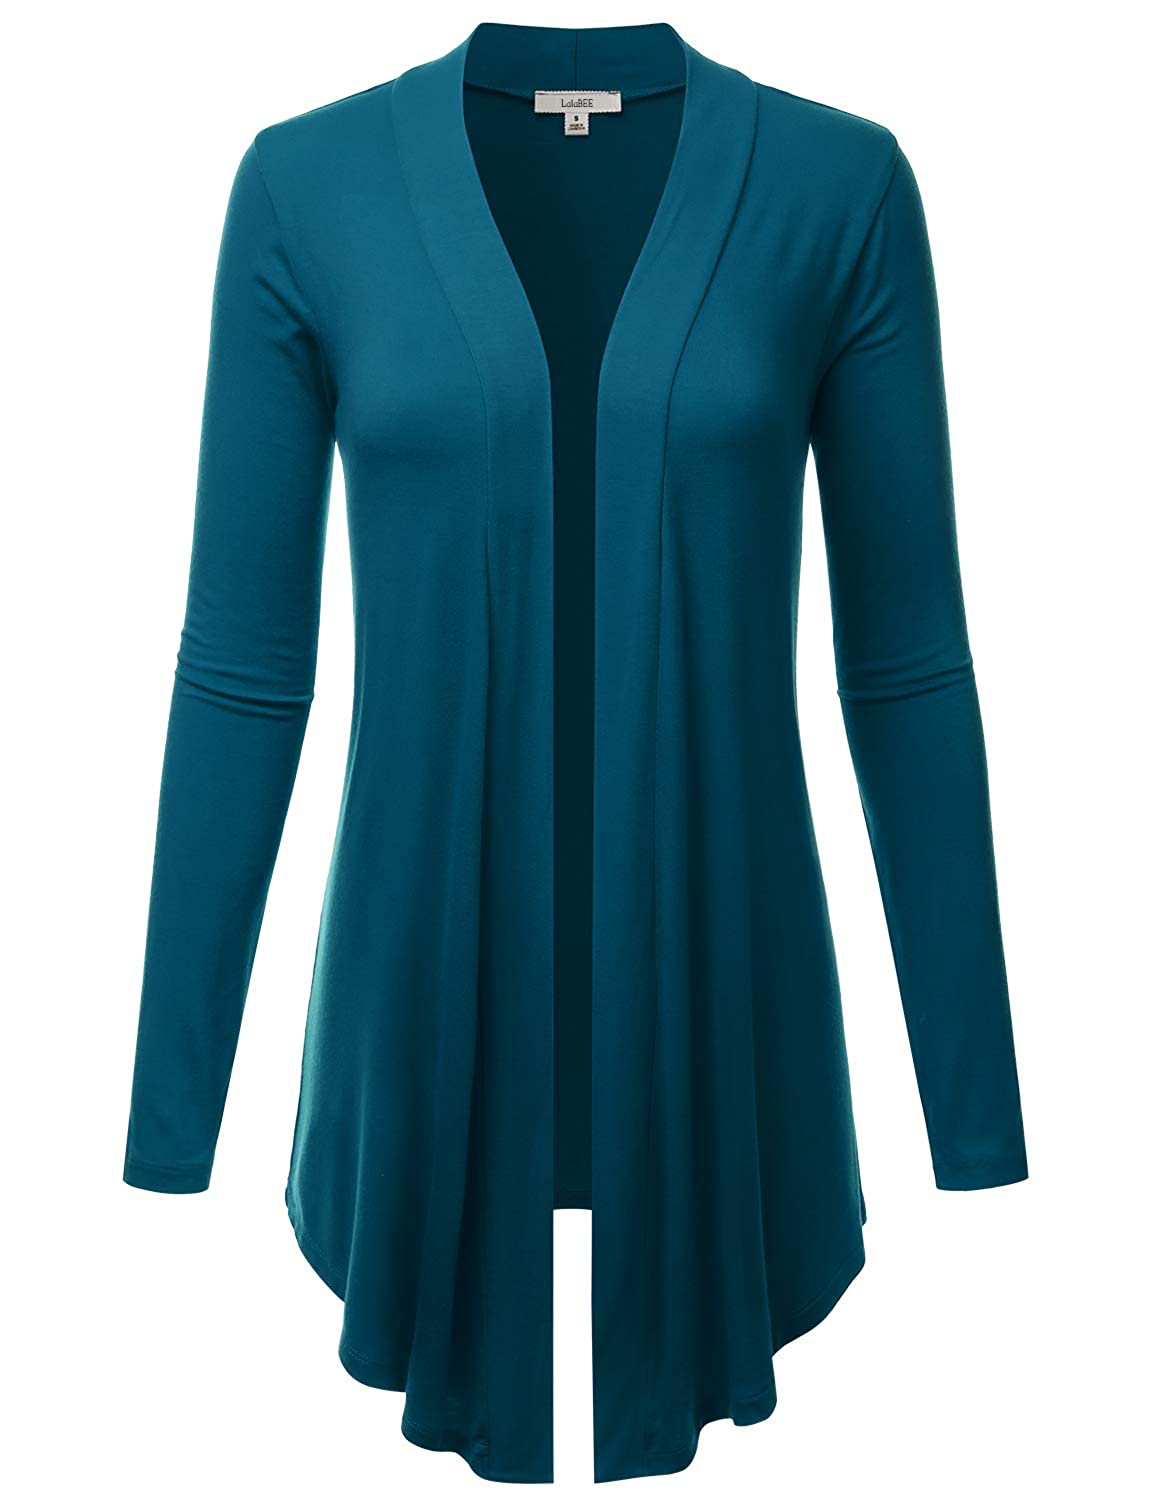 Lbt007teal LALABEE Women's Draped OpenFront Long Sleeve Light Weight Cardigan (S3XL)